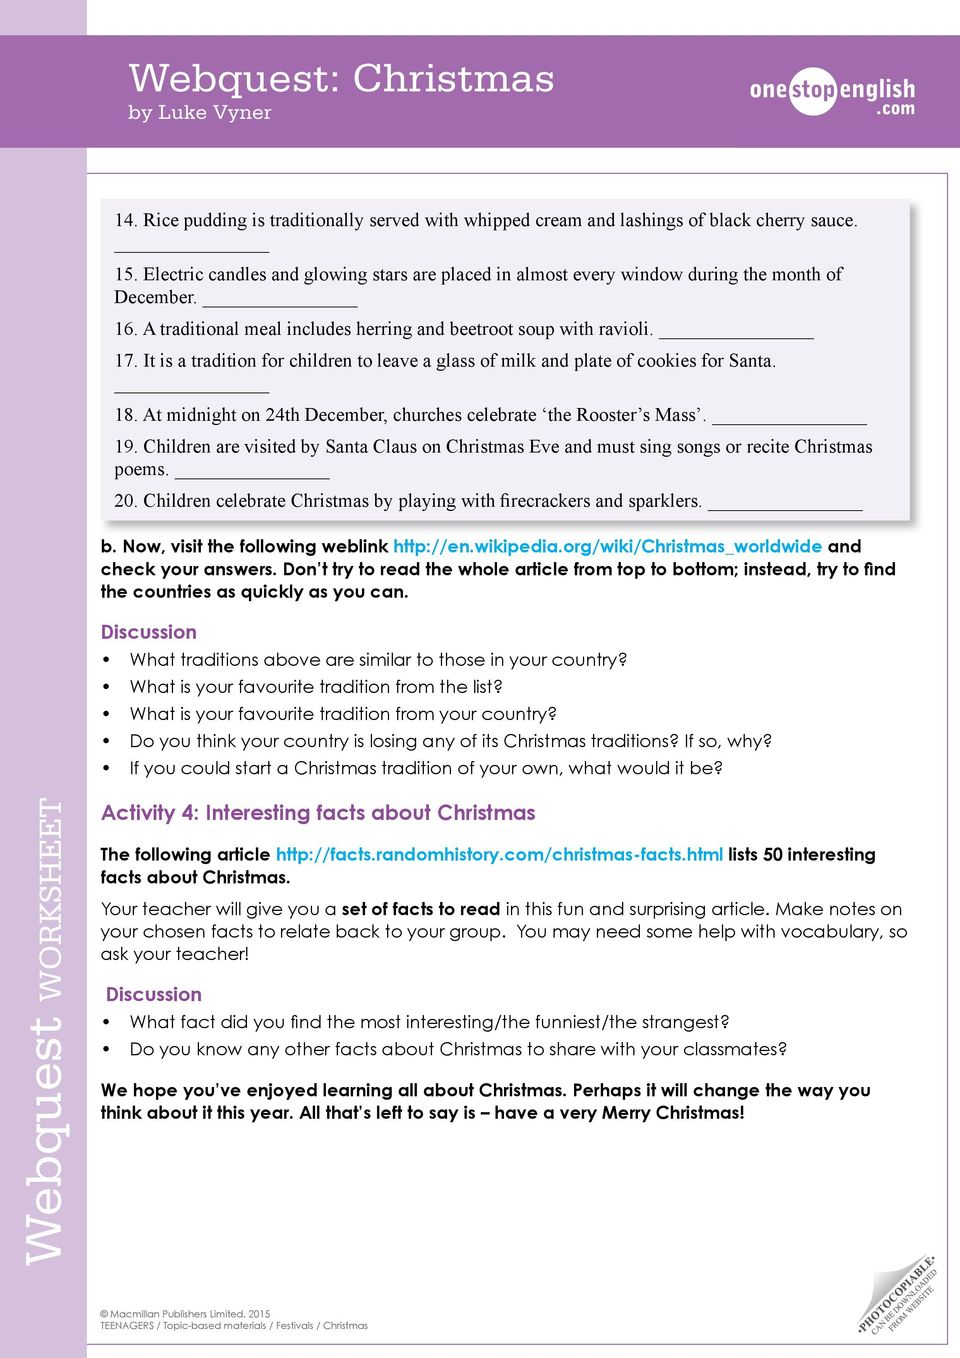 Webquest WORKSHEET. Webquest: Christmas by Luke Vyner. Activity 1 ...